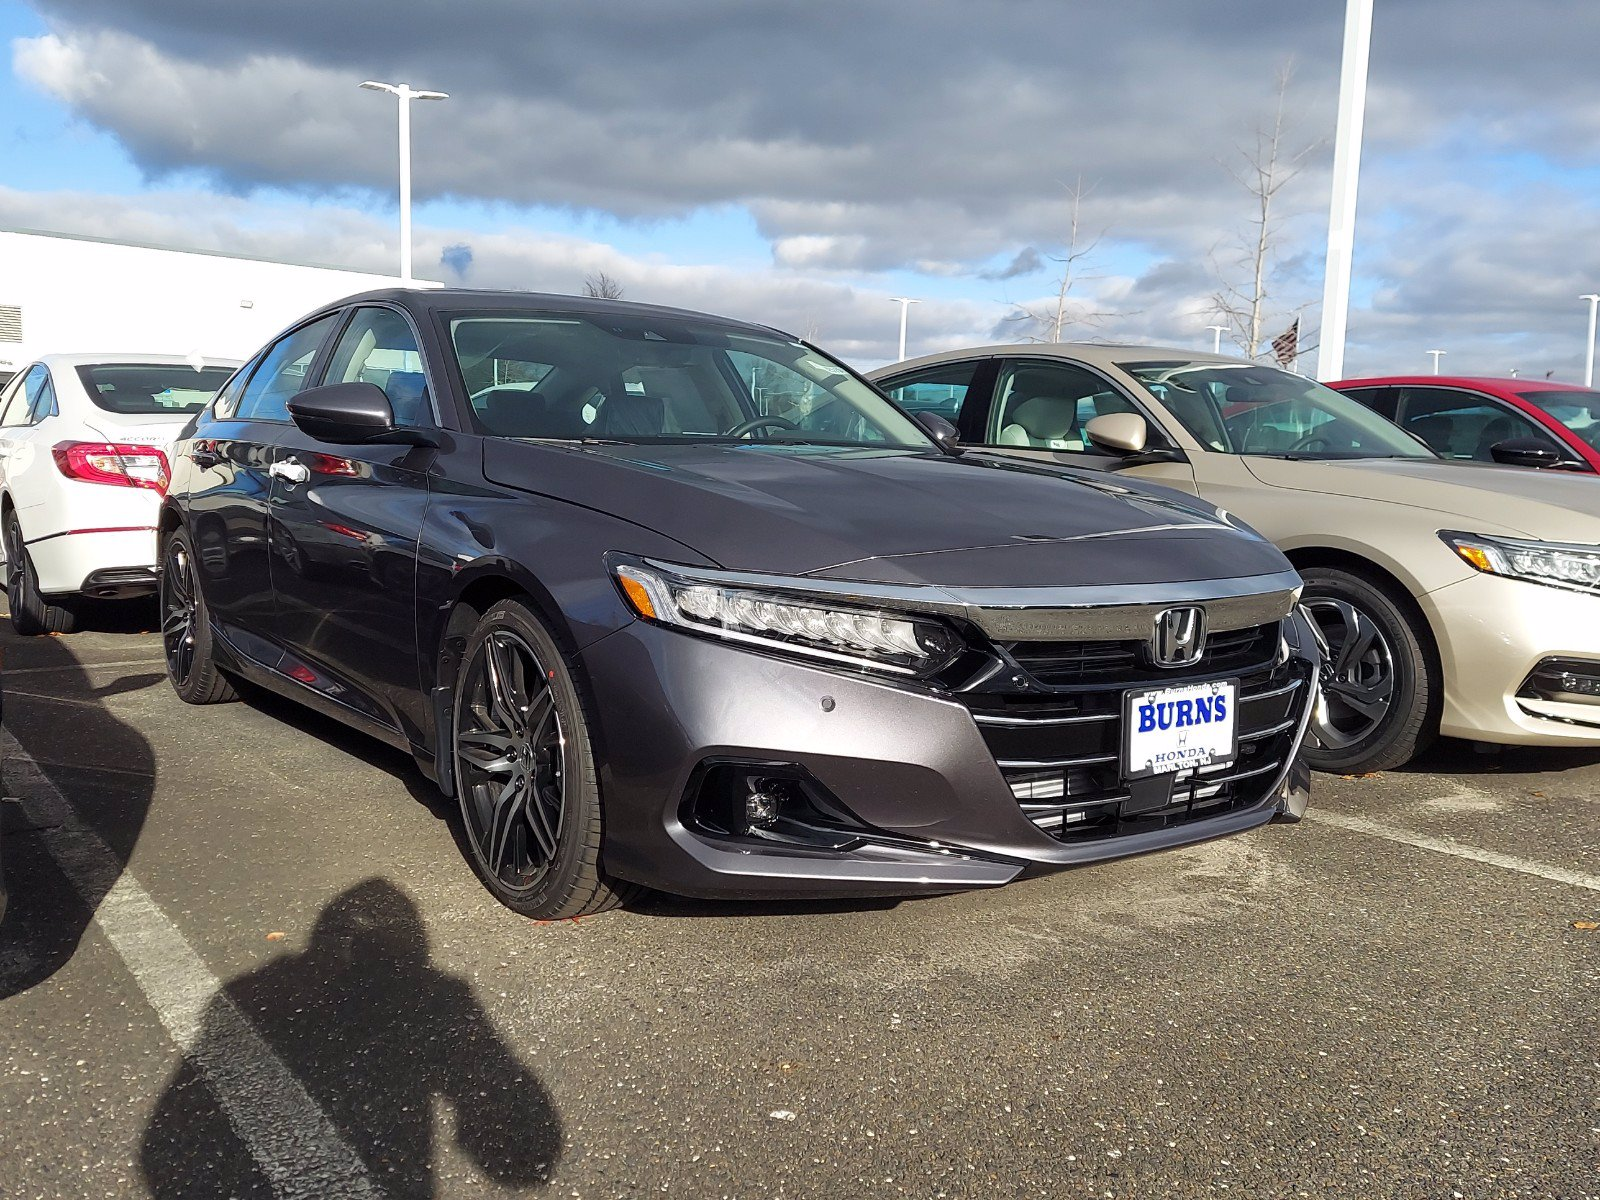 New 2021 Honda Accord For Sale At Burns Honda Vin 1hgcv2f90ma000890